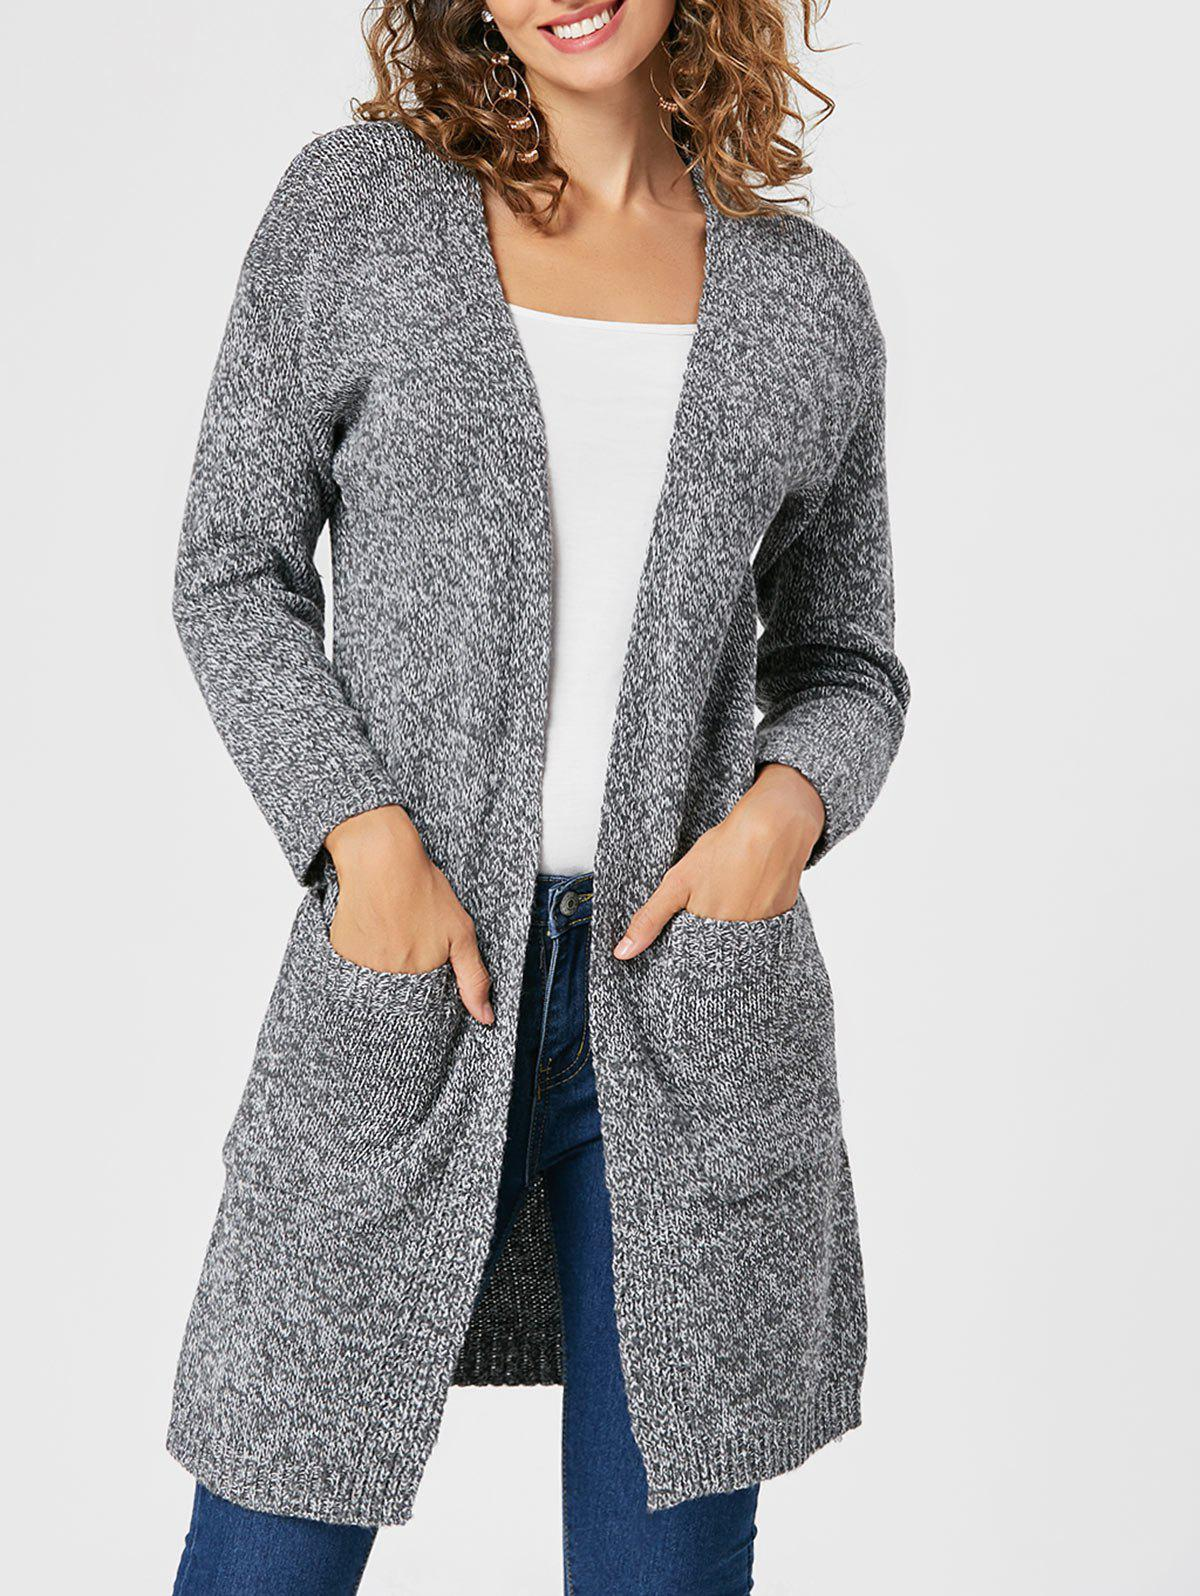 Pockets Knitted Open Front CardiganWOMEN<br><br>Size: ONE SIZE; Color: DEEP GRAY; Type: Pullovers; Material: Polyester; Sleeve Length: Full; Collar: Collarless; Style: Fashion; Pattern Type: Solid; Season: Fall,Spring; Weight: 0.6500kg; Package Contents: 1 x Cardigan;